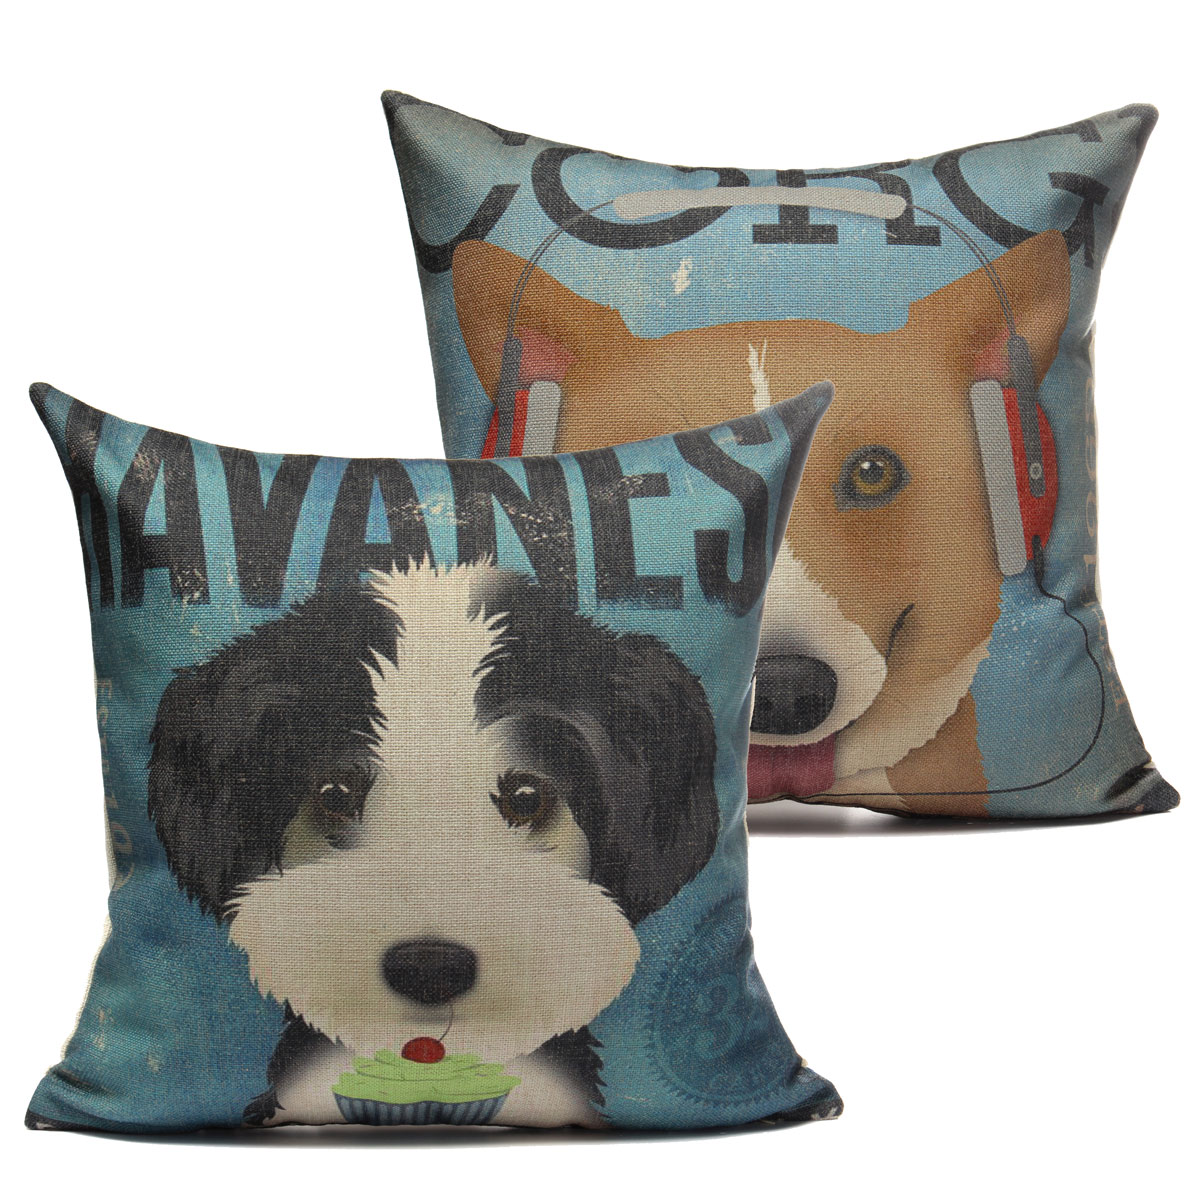 Ornate Animal Pillow Cover Giveaway : Cushion Cover Dog Animal Throw Sofa Pillow Case Home Decor Cotton Decorative eBay